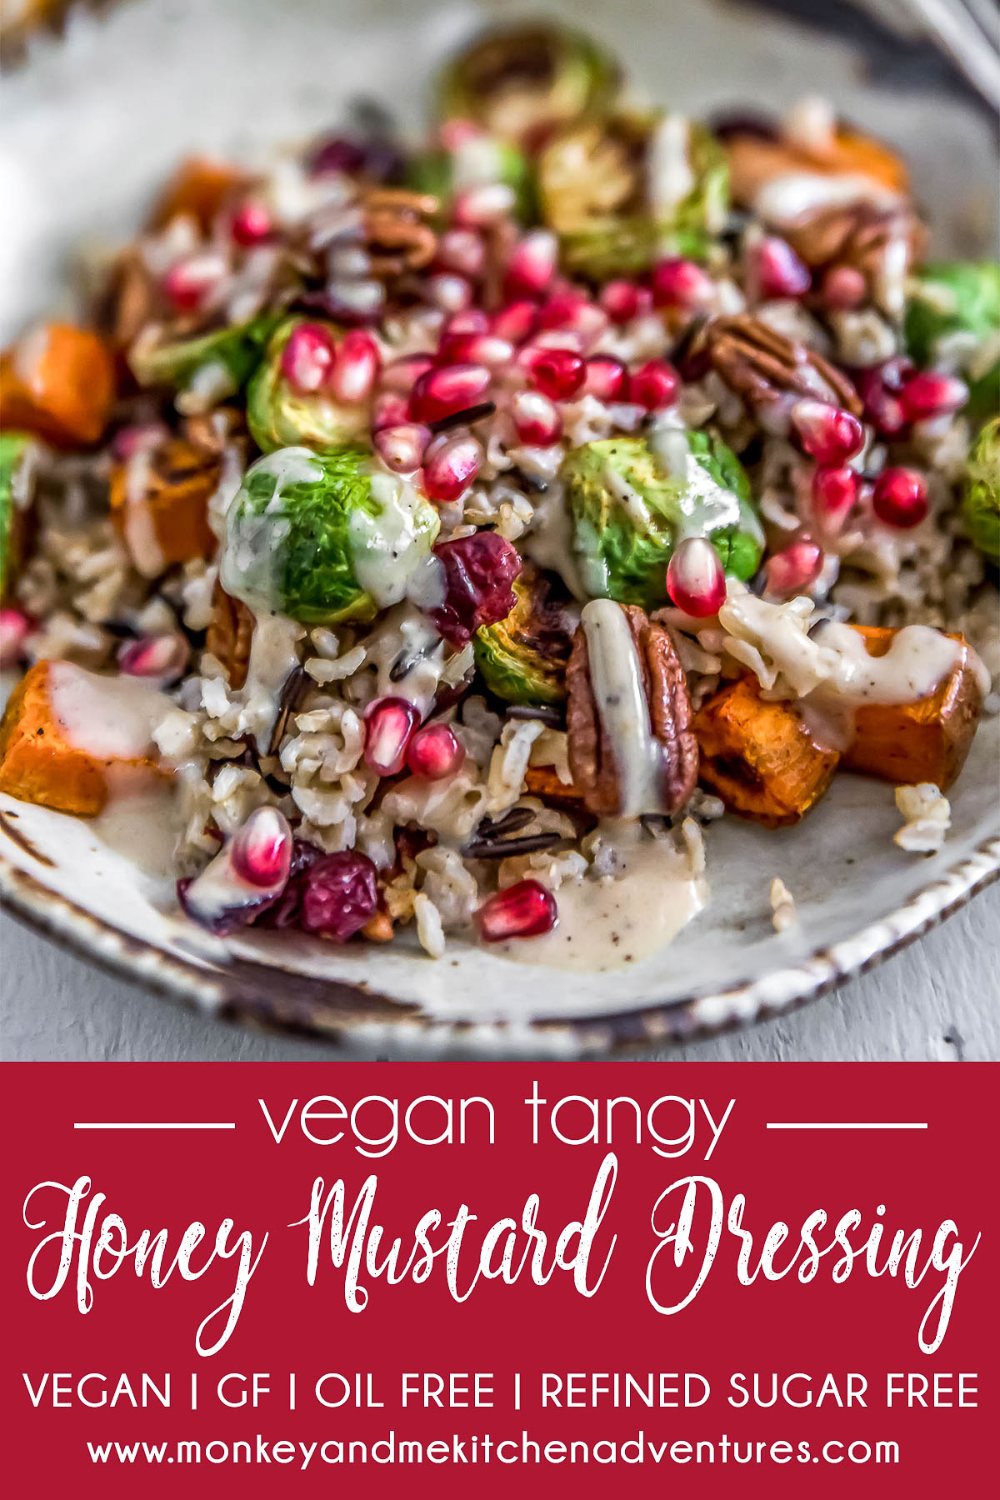 Vegan Tangy Honey Mustard Dressing Recipe (With images